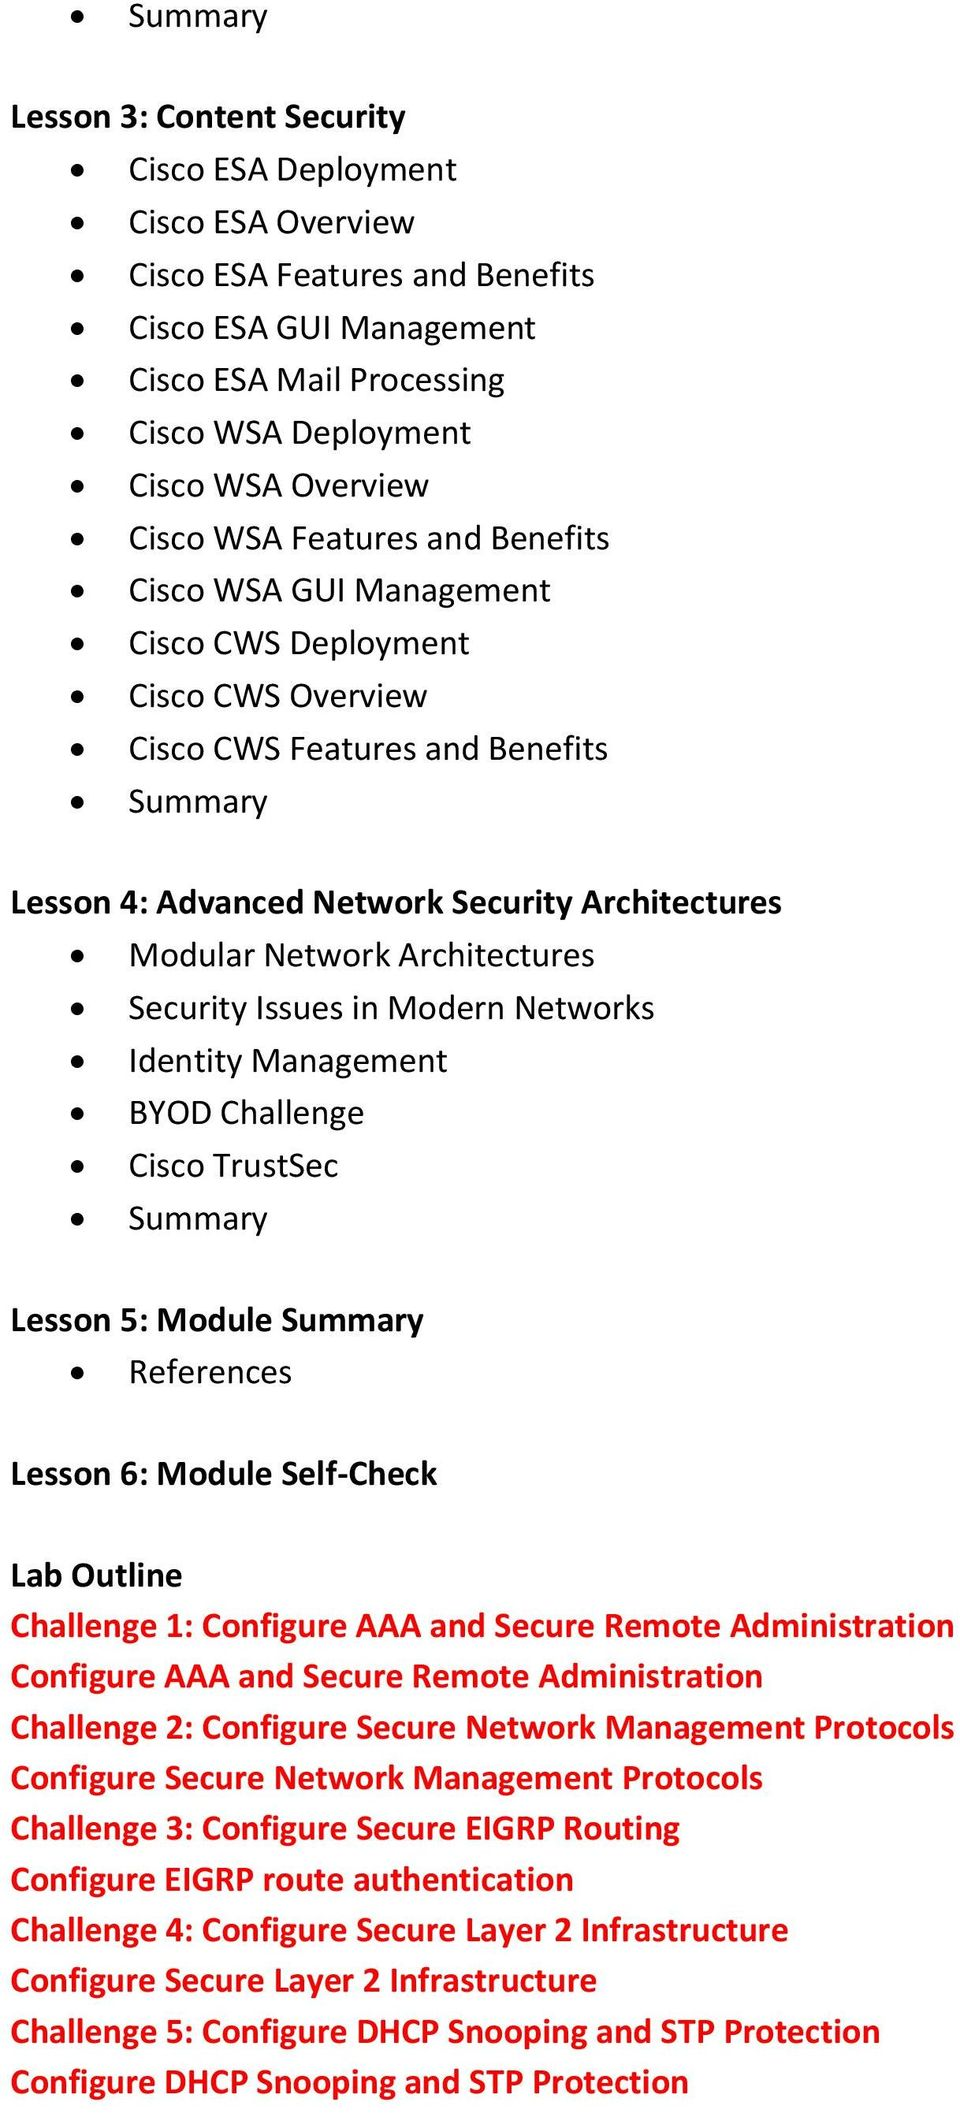 Security Issues in Modern Networks Identity Management BYOD Challenge Cisco TrustSec Lesson 5: Module Lesson 6: Module Self-Check Lab Outline Challenge 1: Configure AAA and Secure Remote